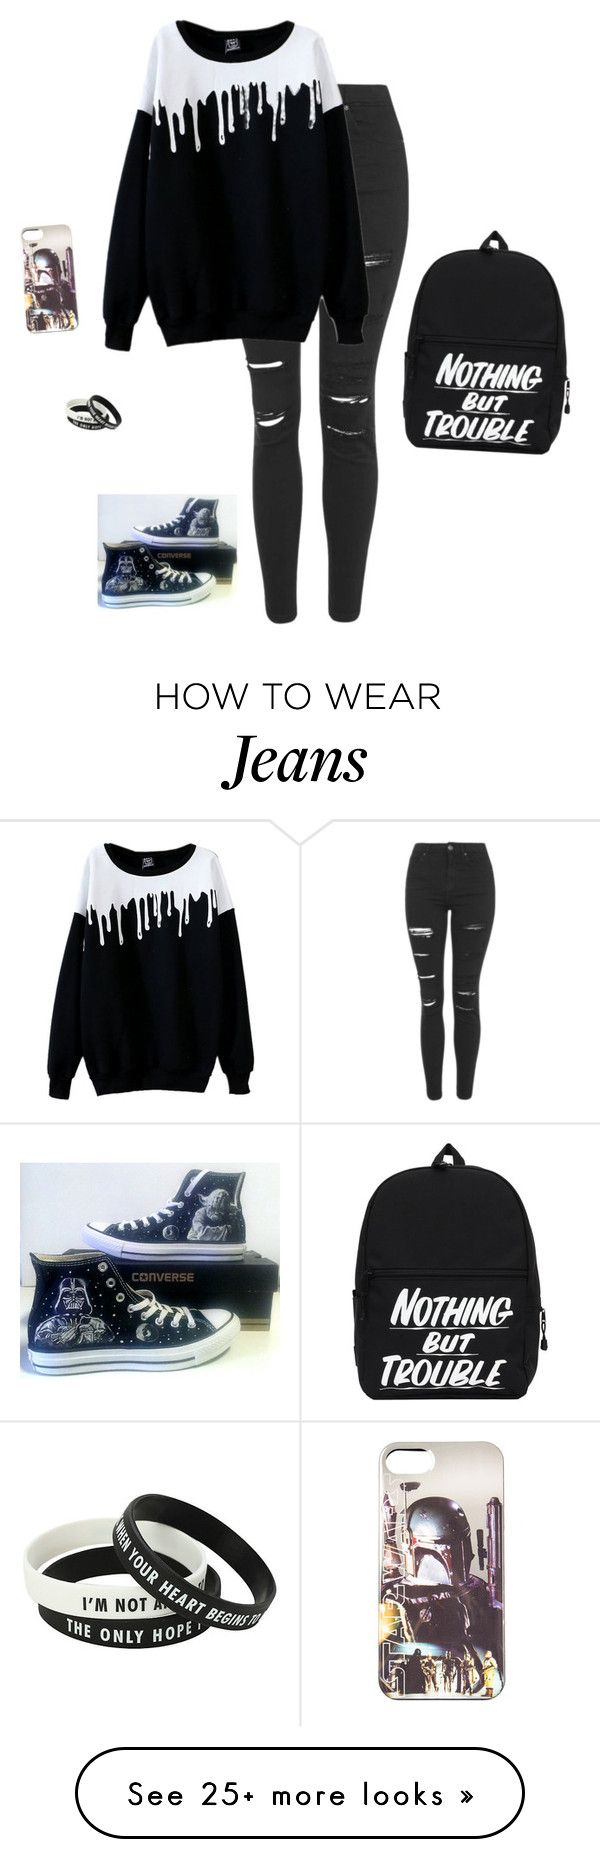 """""""I'M BORED HALP"""" by hanakdudley on Polyvore featuring Topshop and Converse"""